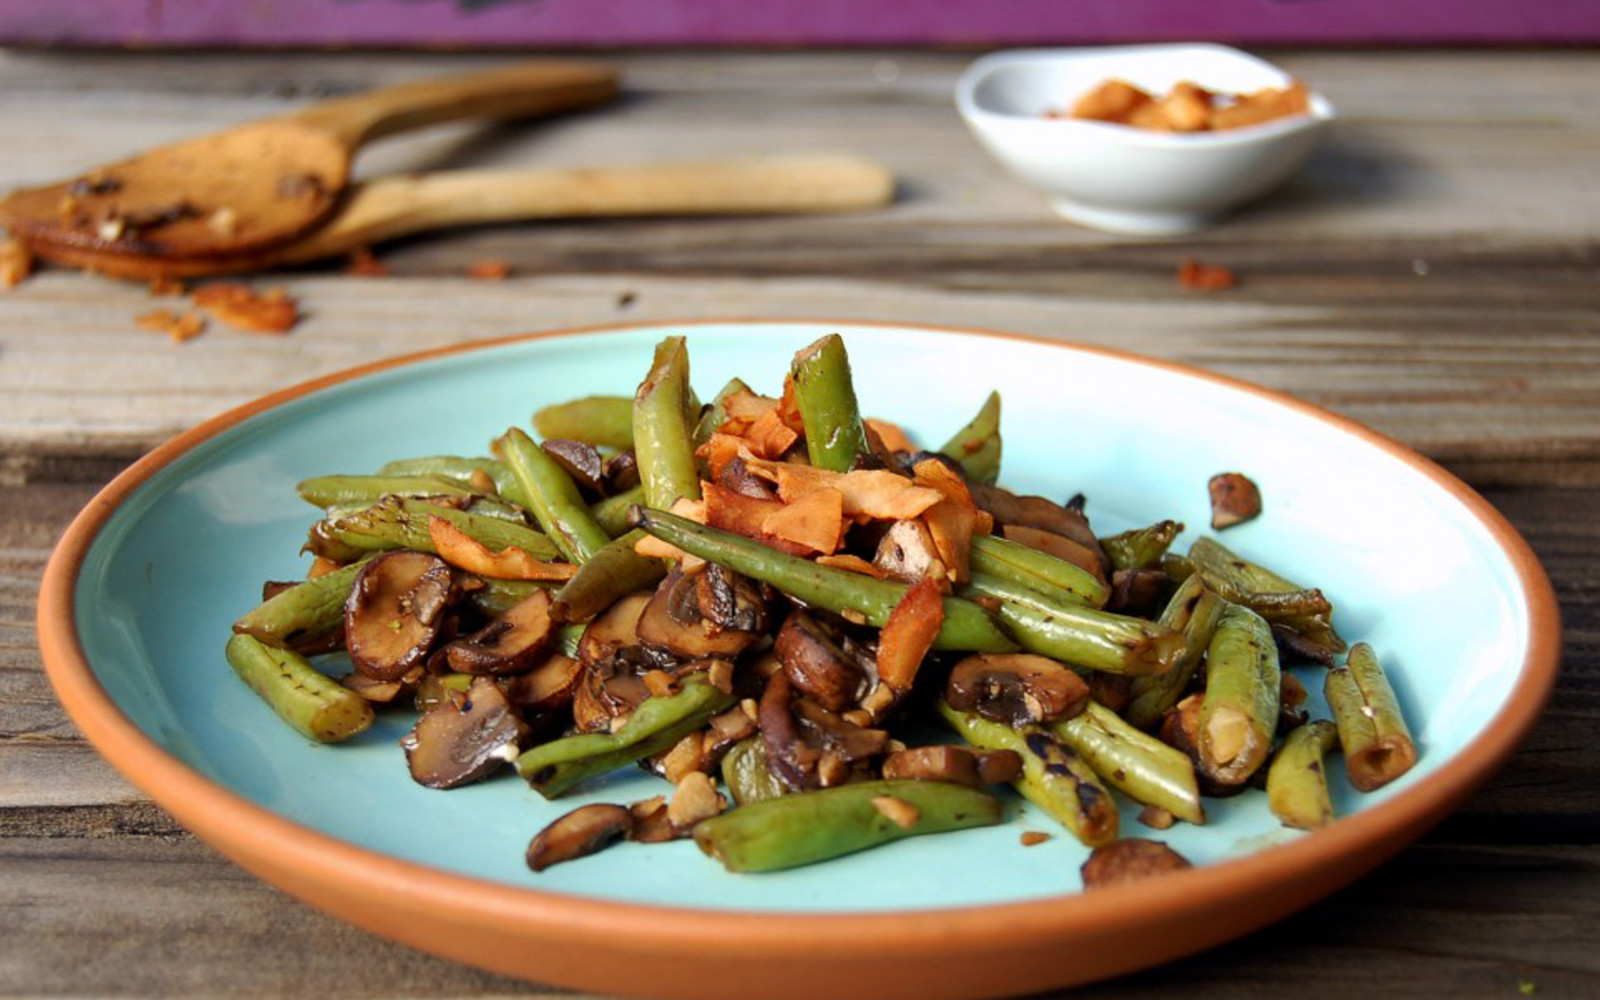 Balsamic Mushrooms and Green Beans With Coconut Bacon